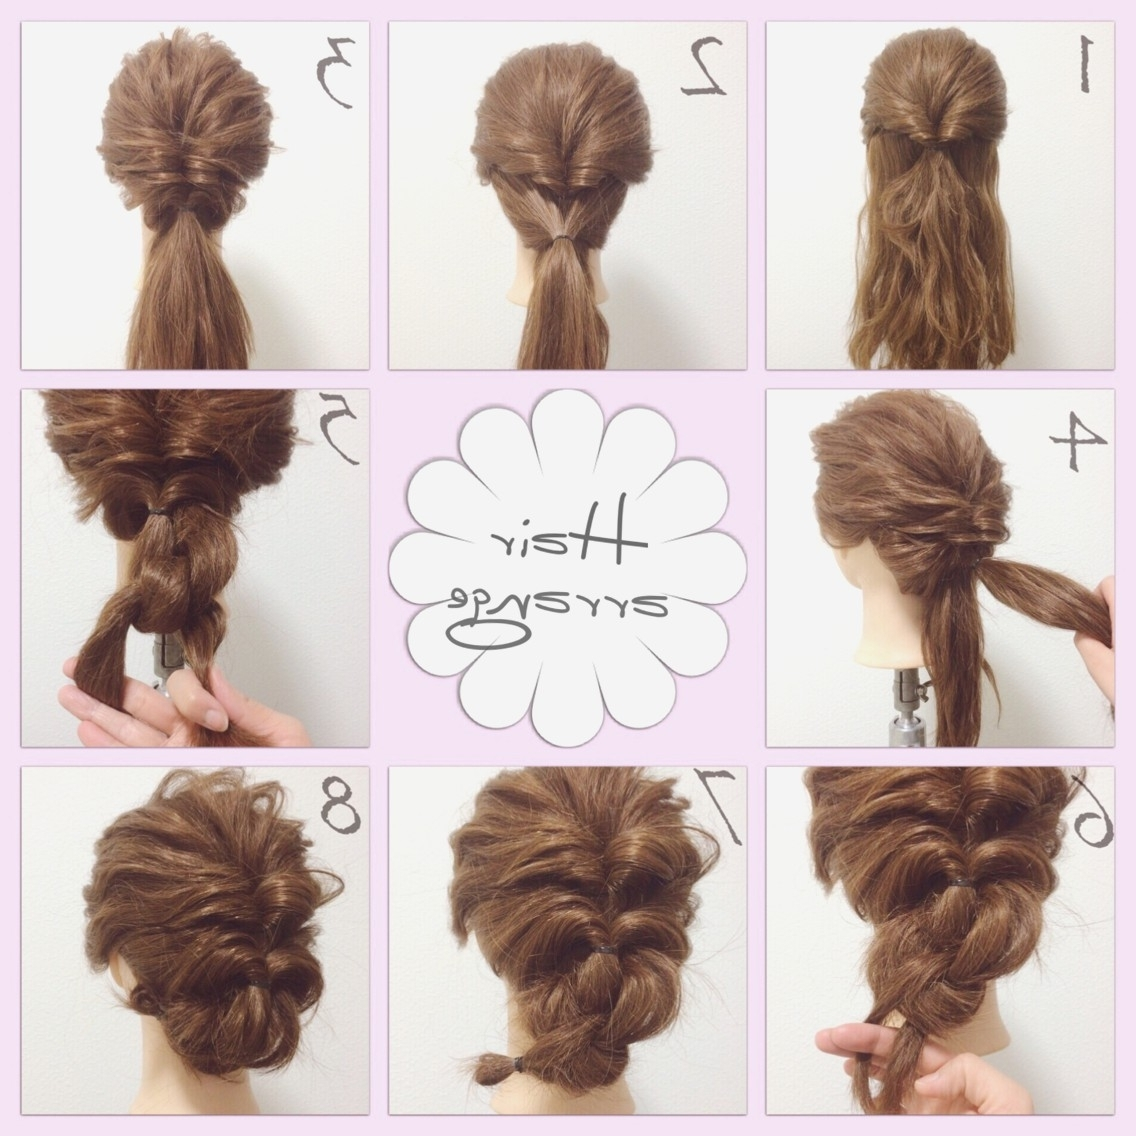 Braid Hairstyles : Top Easy Braided Hairstyles For Shoulder Length For Trendy Medium Length Braided Hairstyles (View 3 of 15)